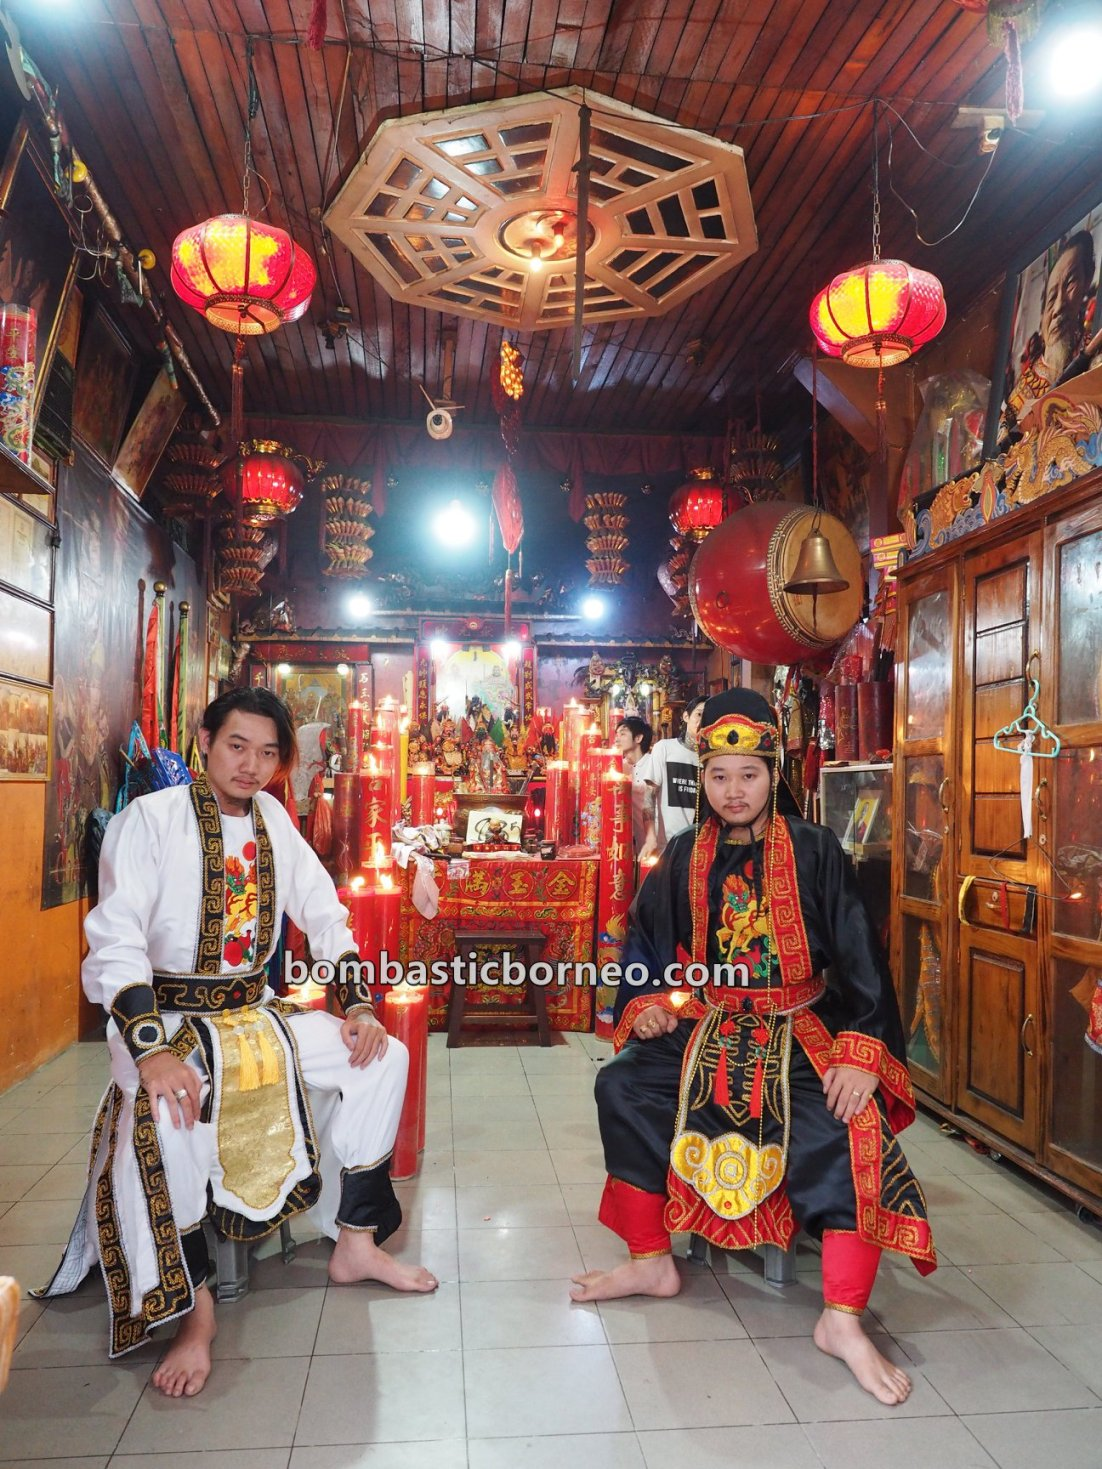 tionghoa, Hakka, Tatung, medium, culture, Chinese New Year, traditional, Indonesia, Kalimantan Barat, Kelenteng Chau Liu Nyian Shai, temple, Tourism, travel guide, Trans Borneo, 西加里曼丹法師乩童,